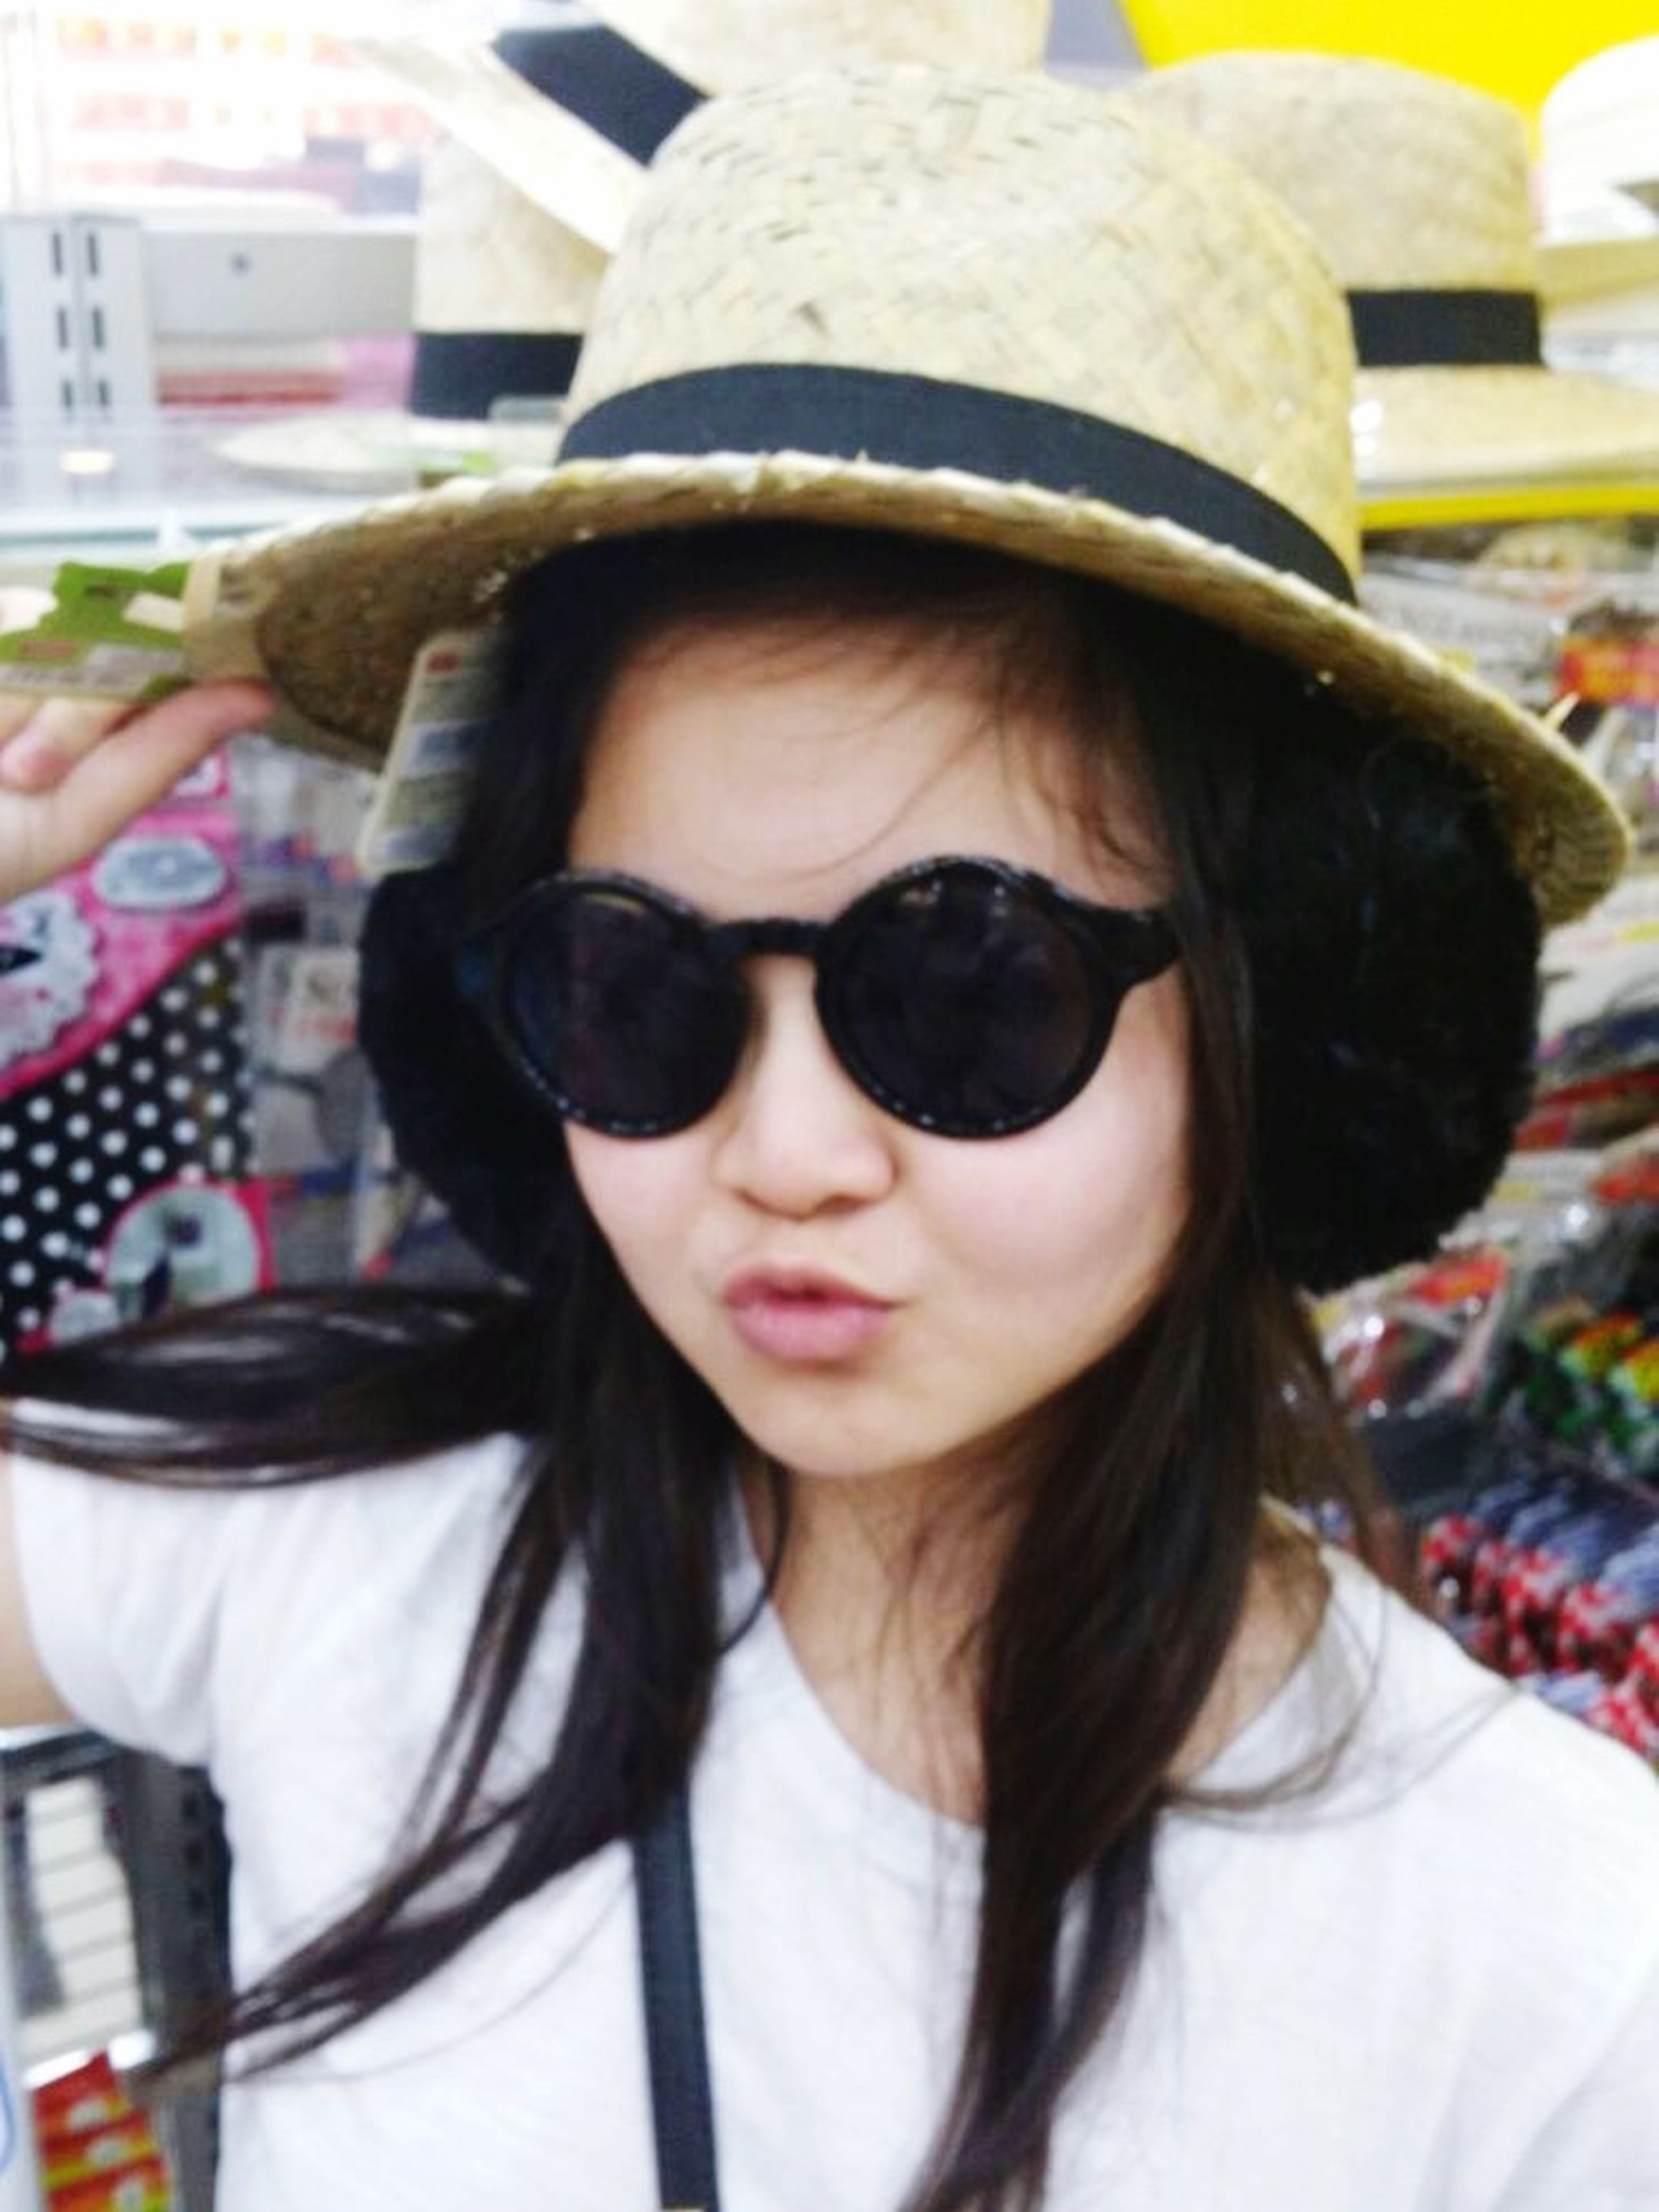 young adult, portrait, looking at camera, person, young women, sunglasses, lifestyles, focus on foreground, leisure activity, front view, headshot, long hair, smiling, casual clothing, head and shoulders, close-up, black hair